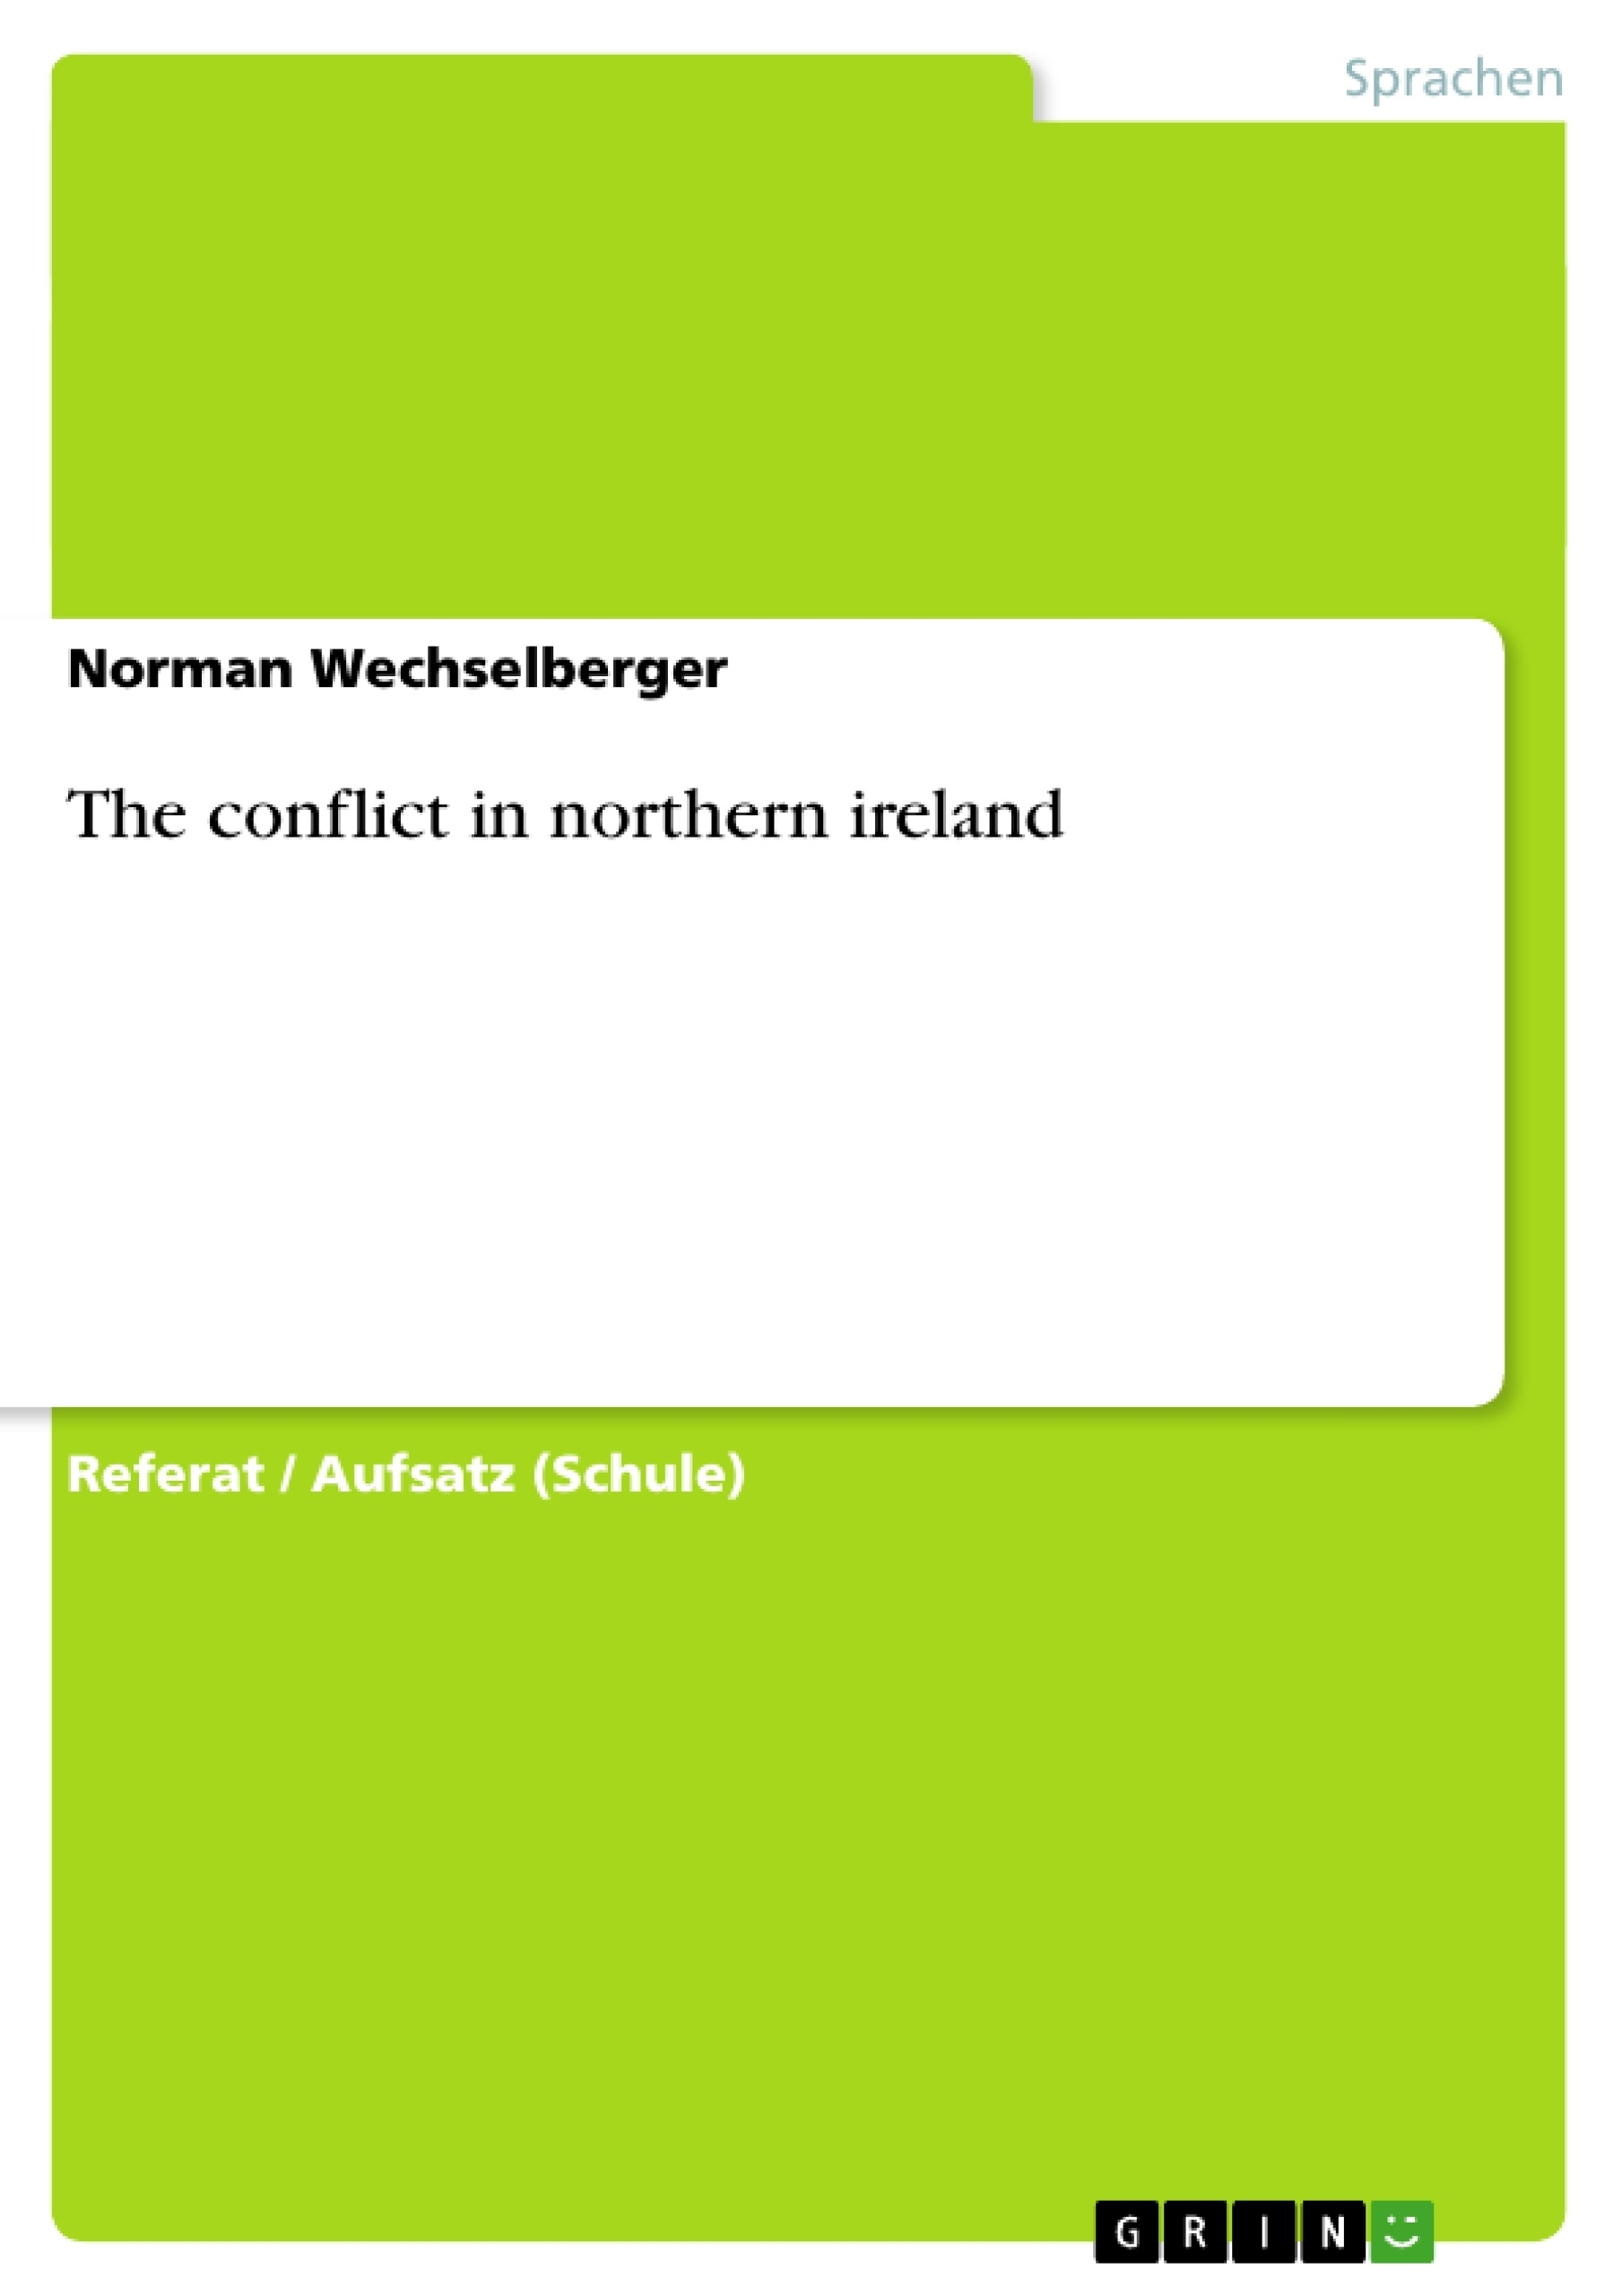 Titel: The conflict in northern ireland